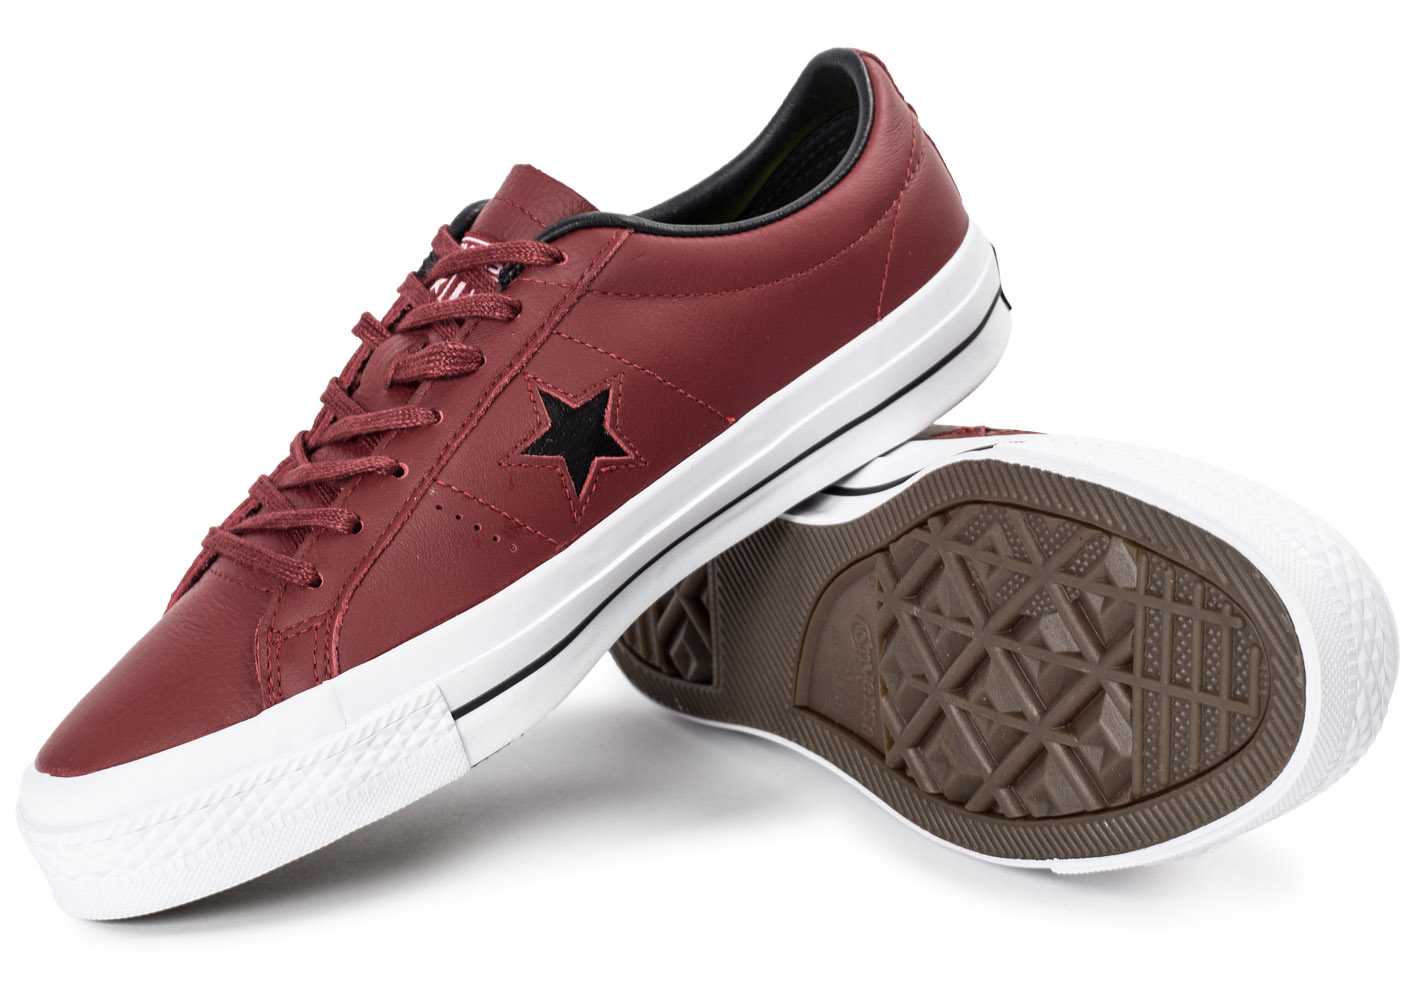 converse one star leather bordeaux baskets tennis homme. Black Bedroom Furniture Sets. Home Design Ideas